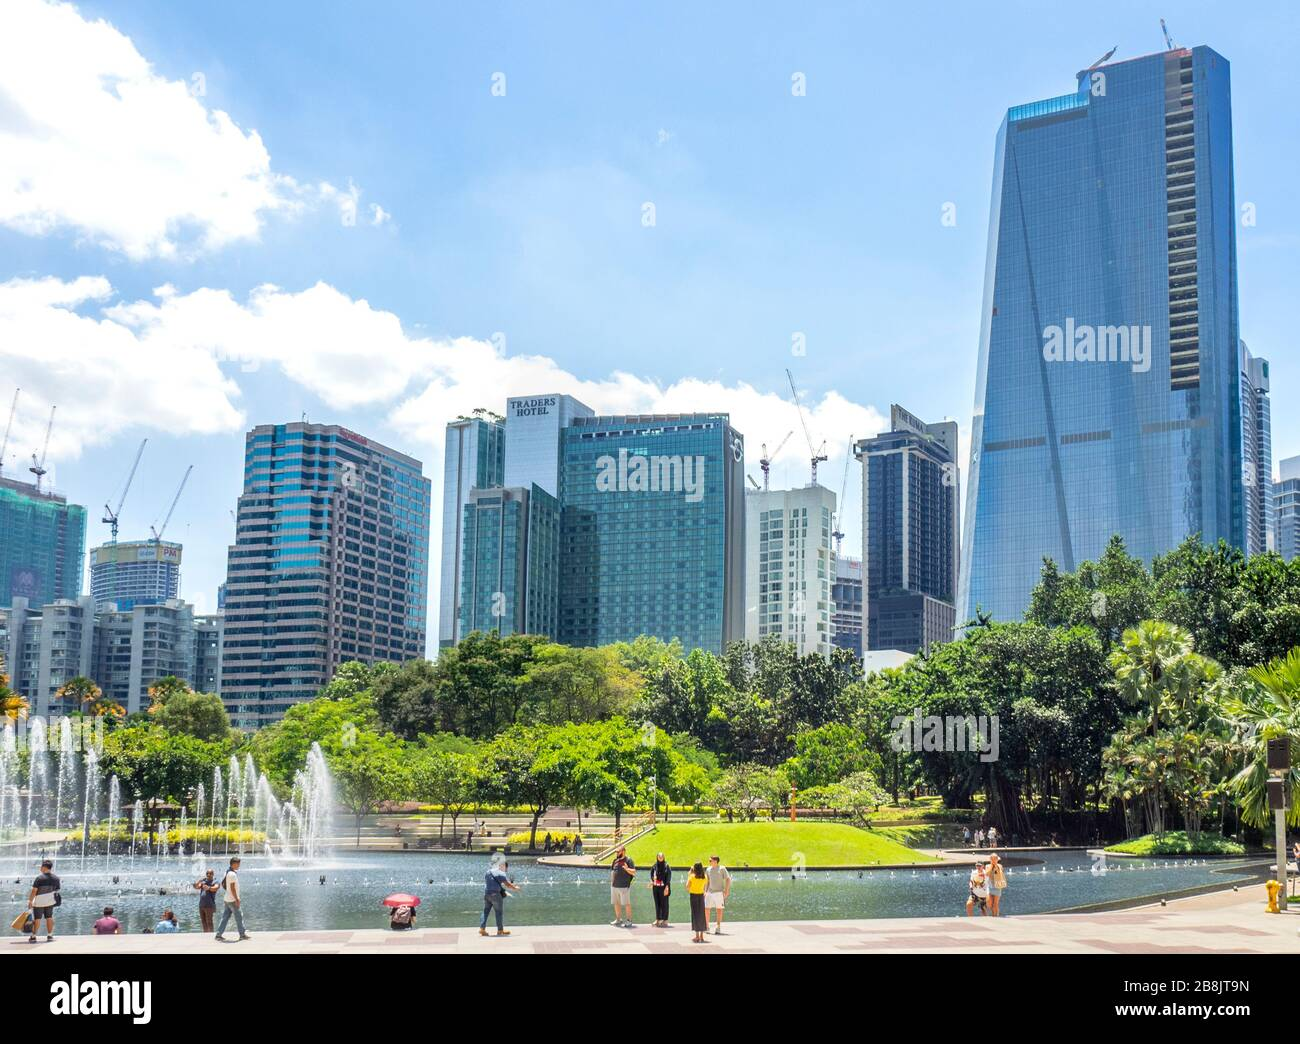 Office and residential high rise towers and fountains in Symphony Lake and tourists enjoying a day at KLCC Park Kuala Lumpur Malaysia. Stock Photo